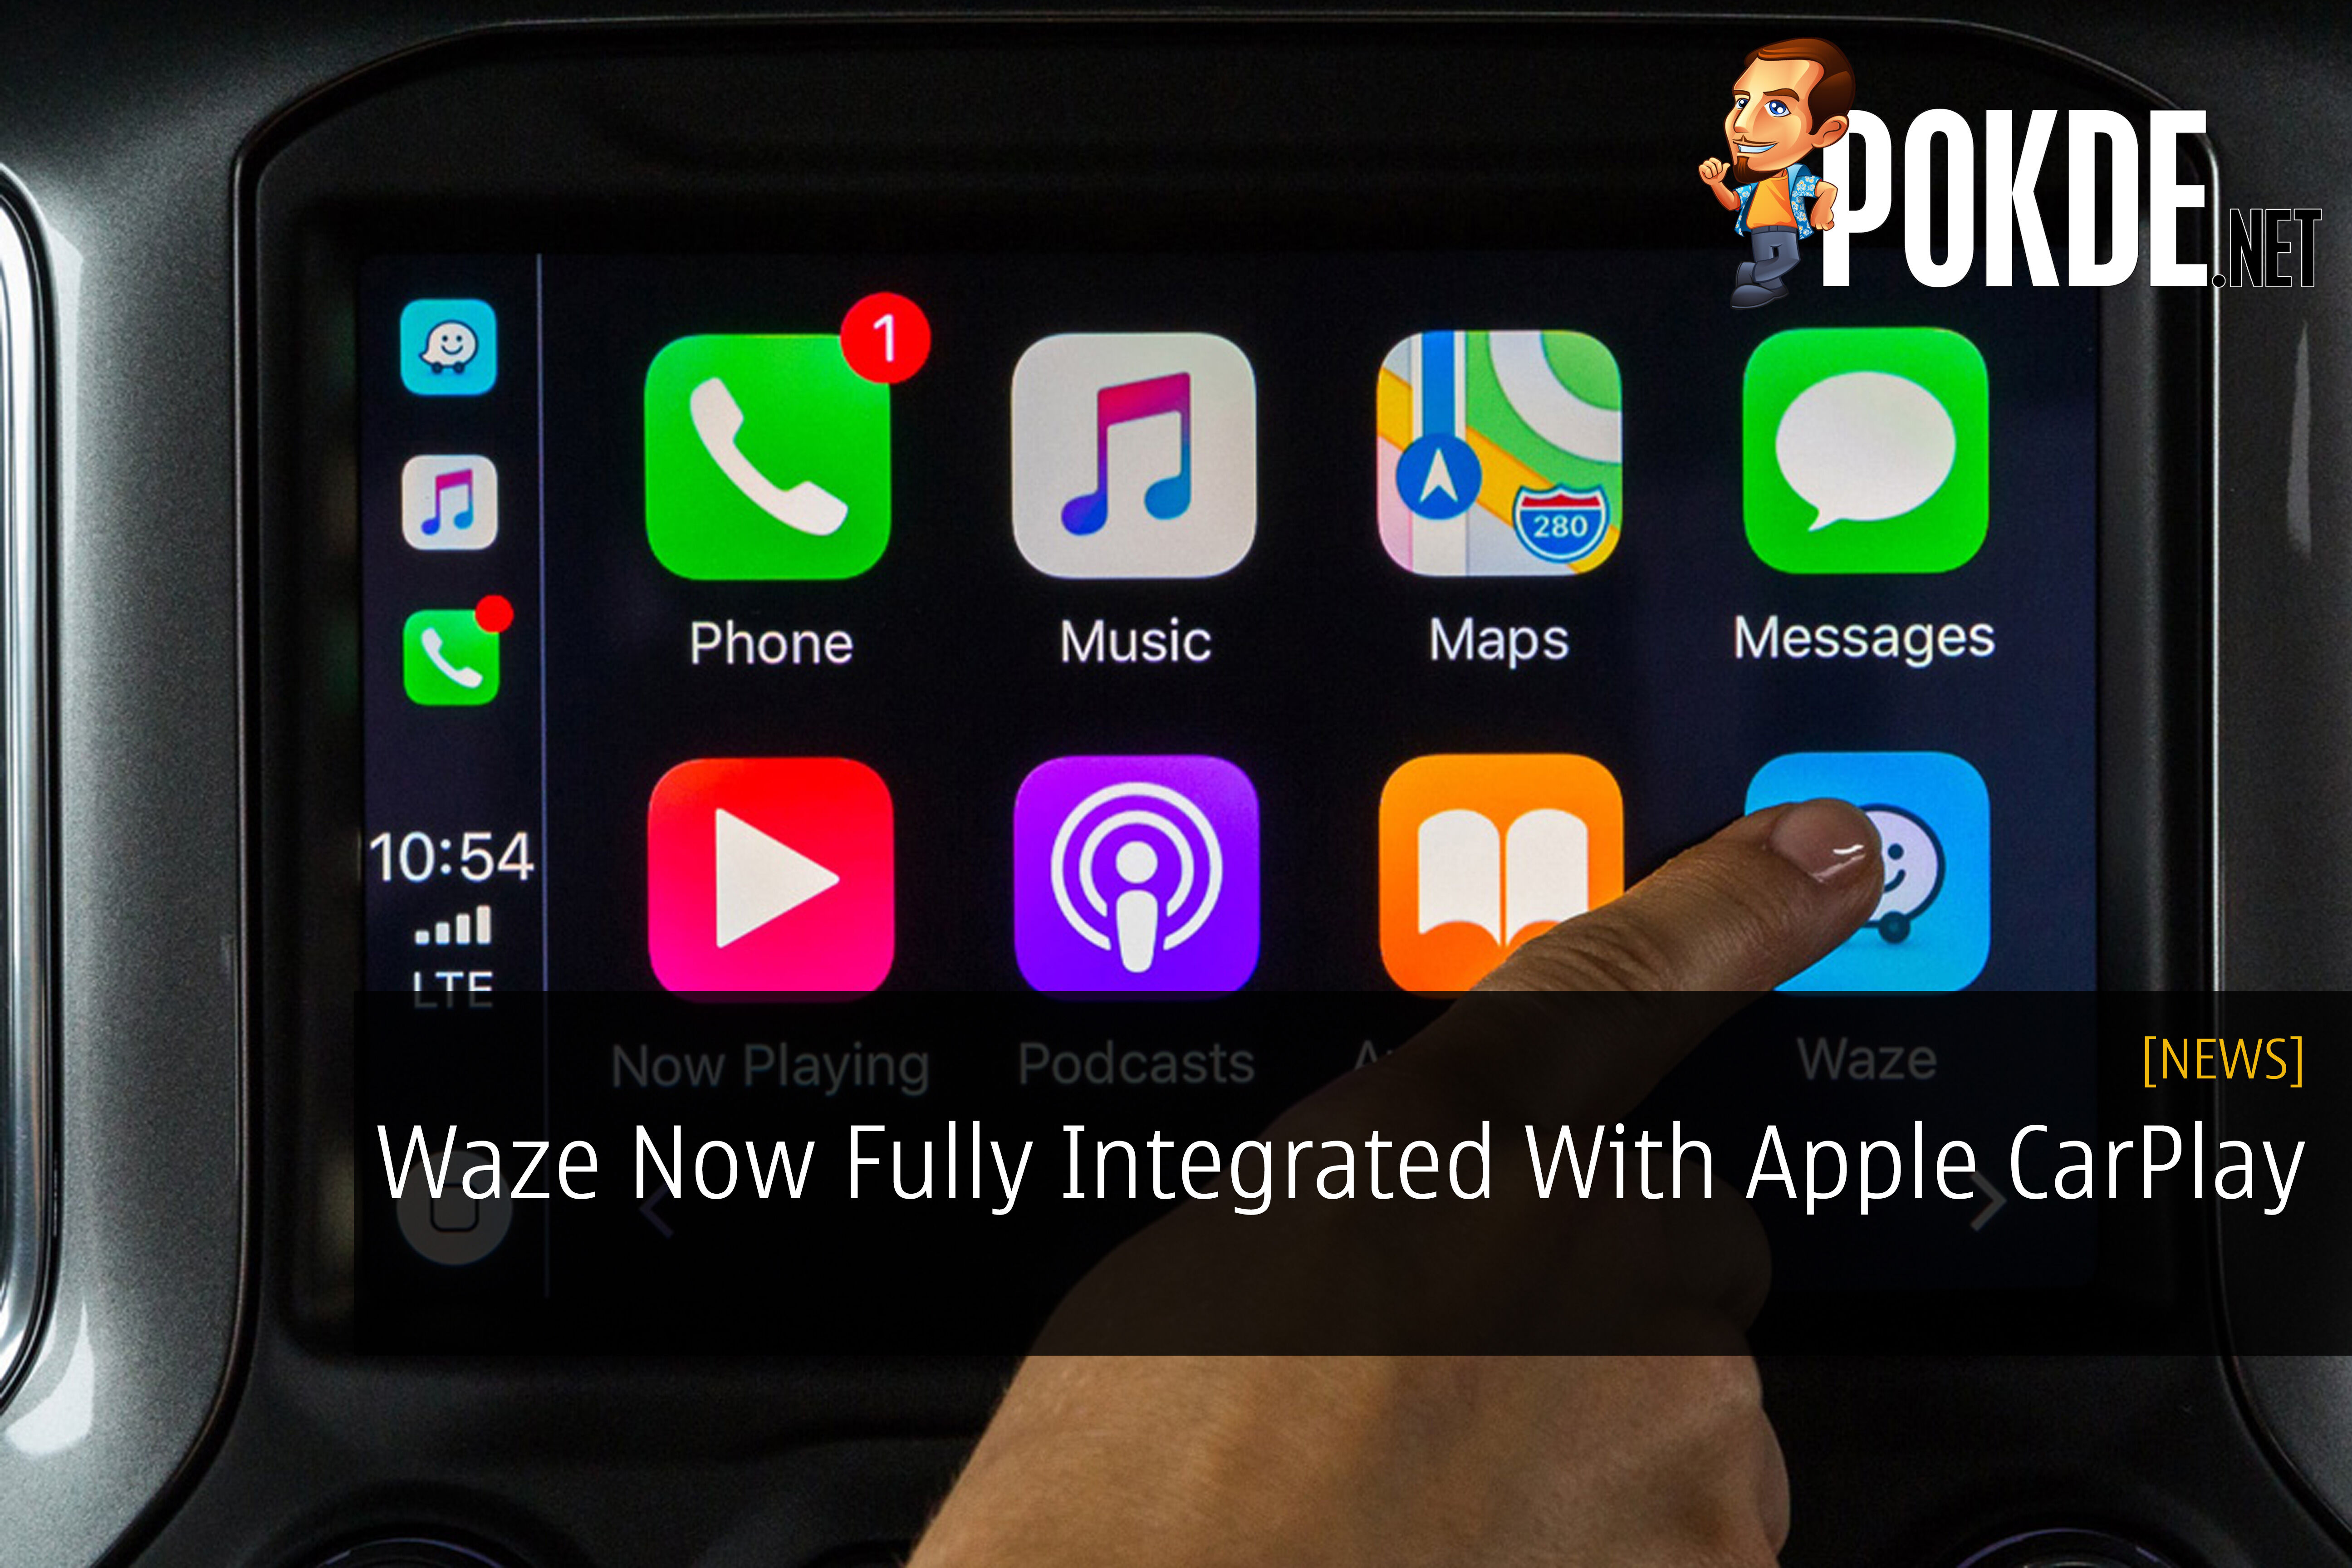 Waze Now Fully Integrated With Apple CarPlay 28